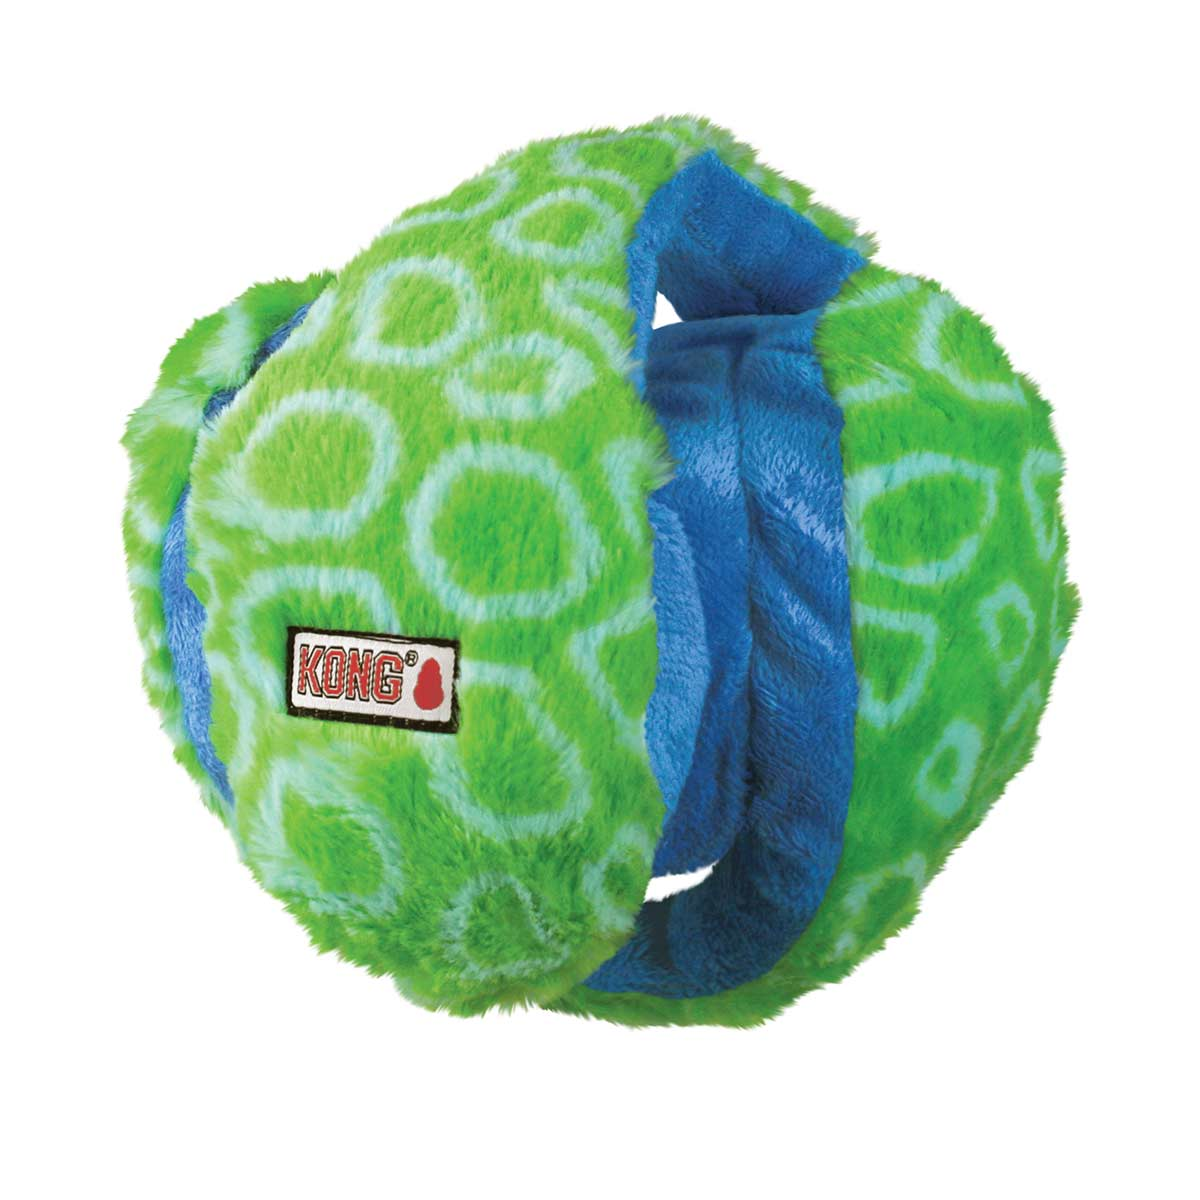 Medium KONG Funzler Six Squeaker Toy Green and Blue